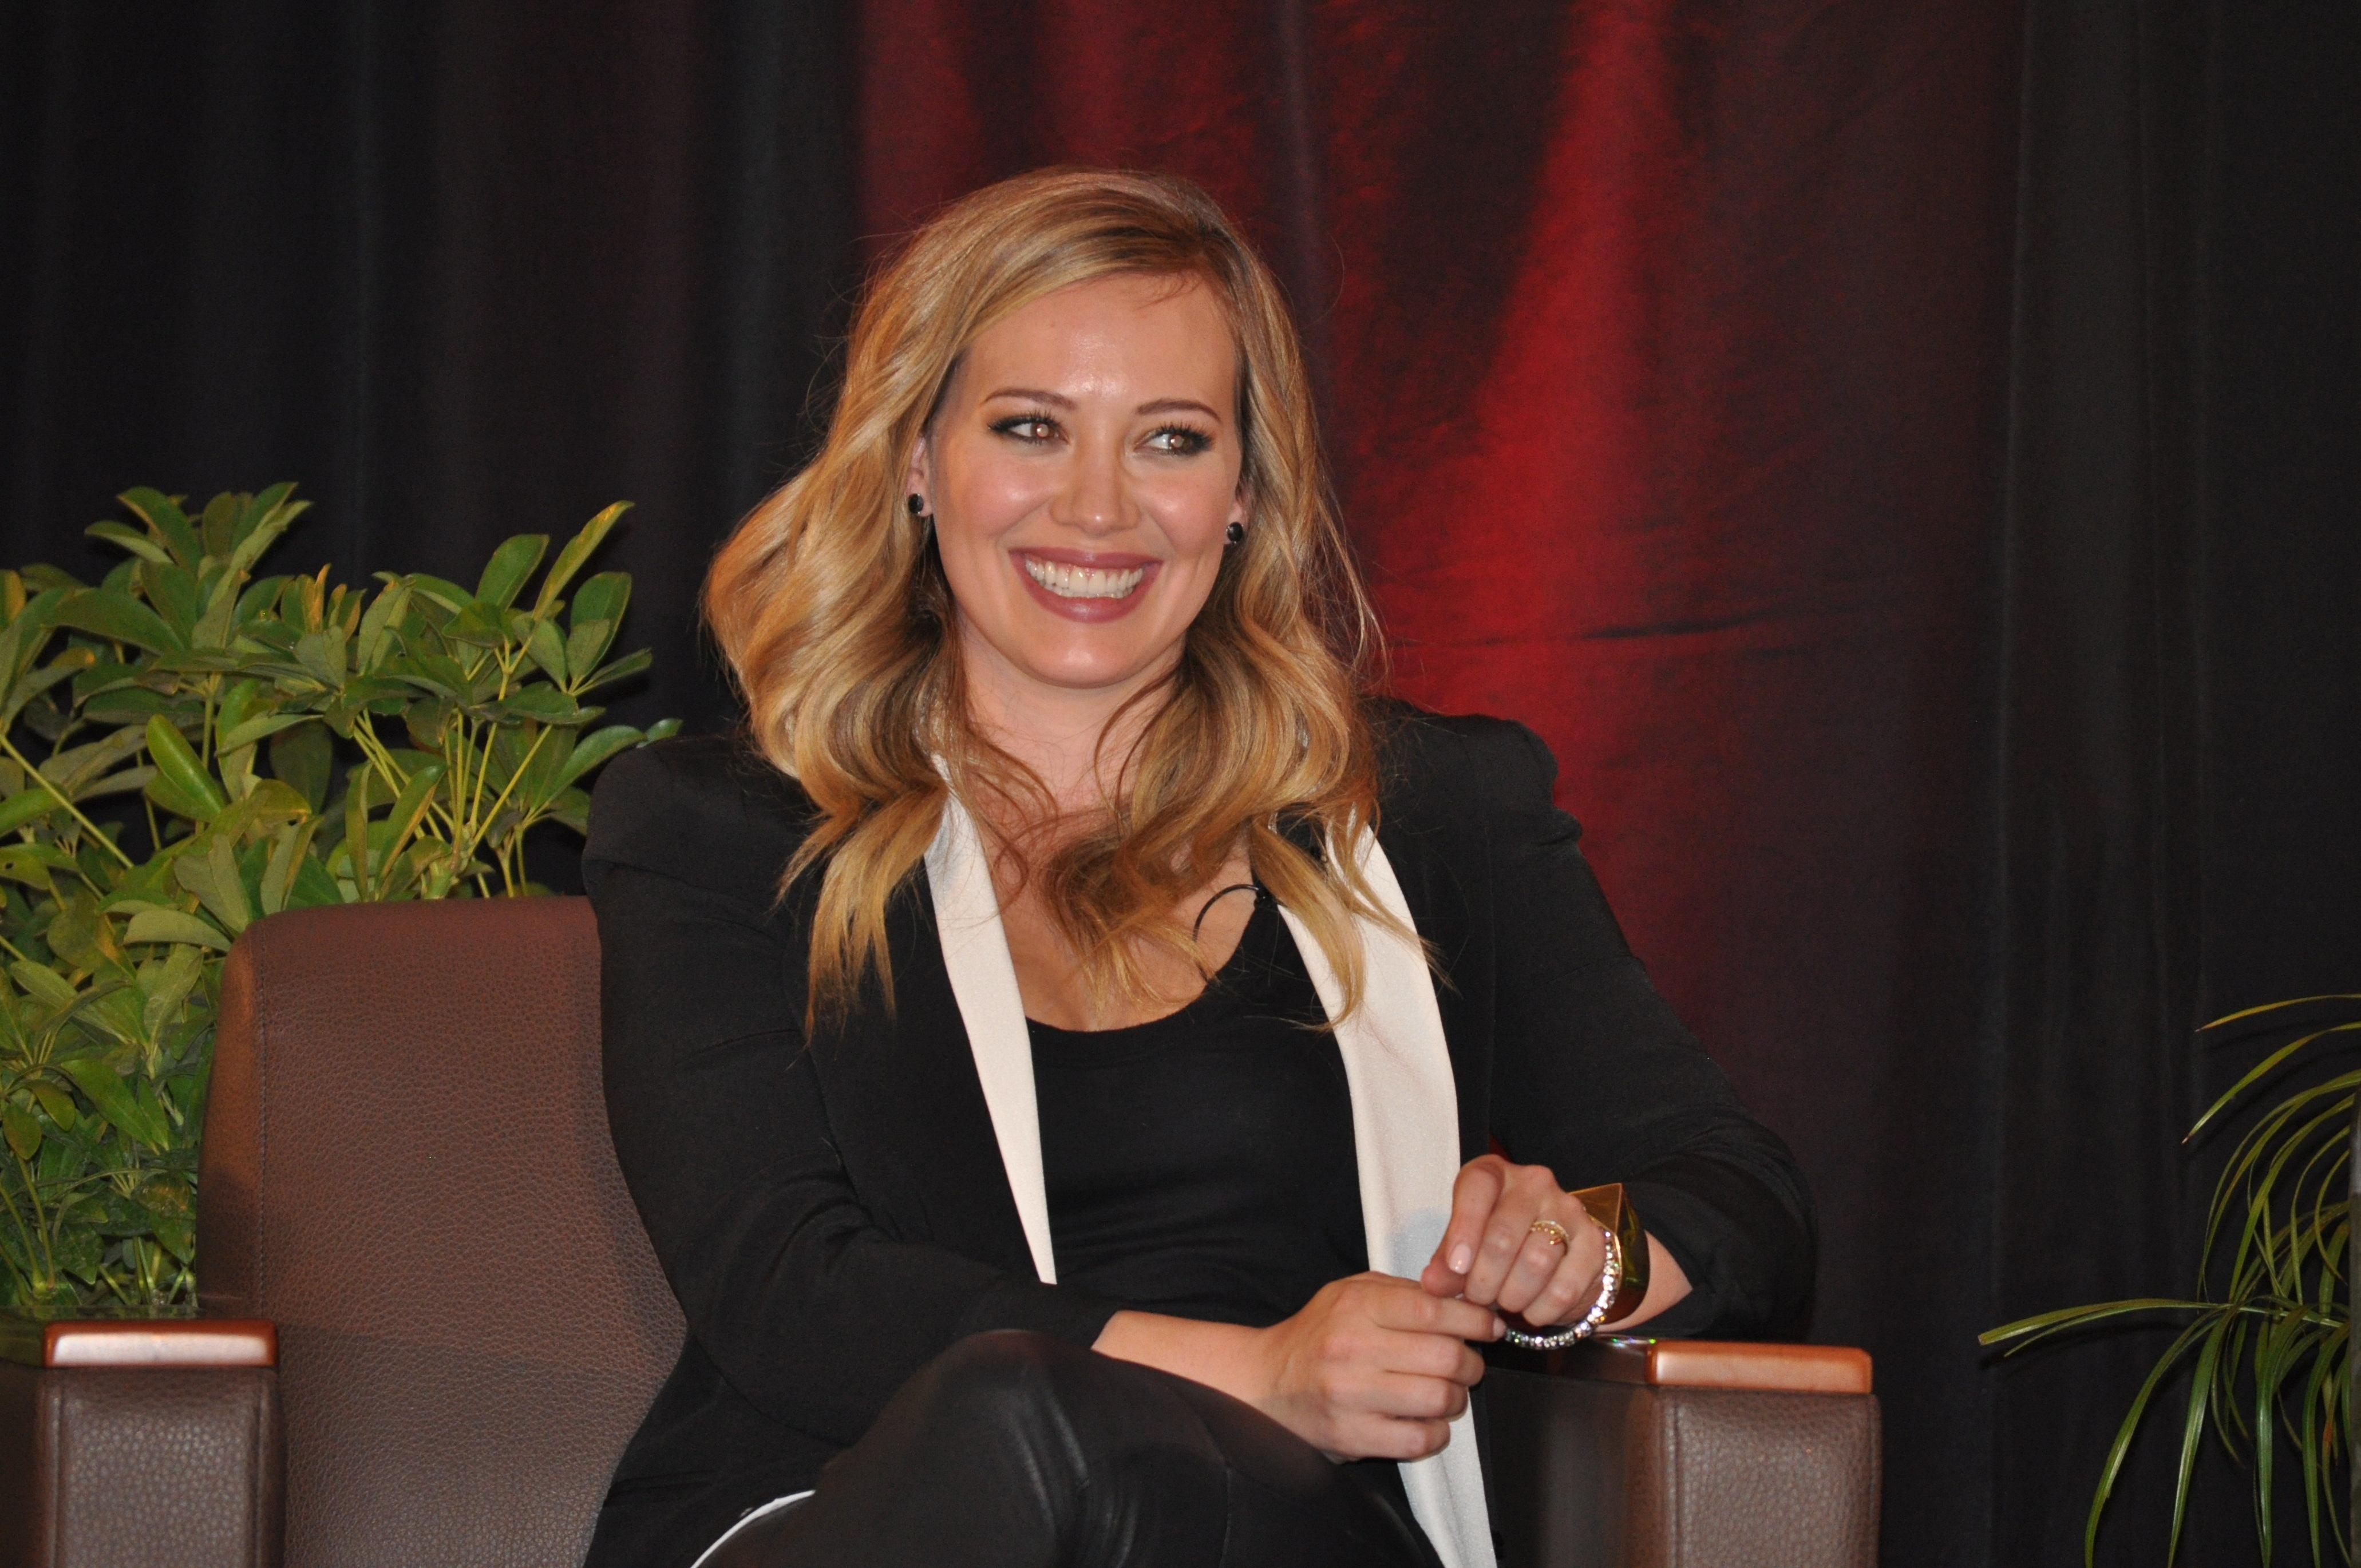 Hilary Duff addressed an audience of Chapman University students, encouraging them to make time in their lives for humanitarian causes.